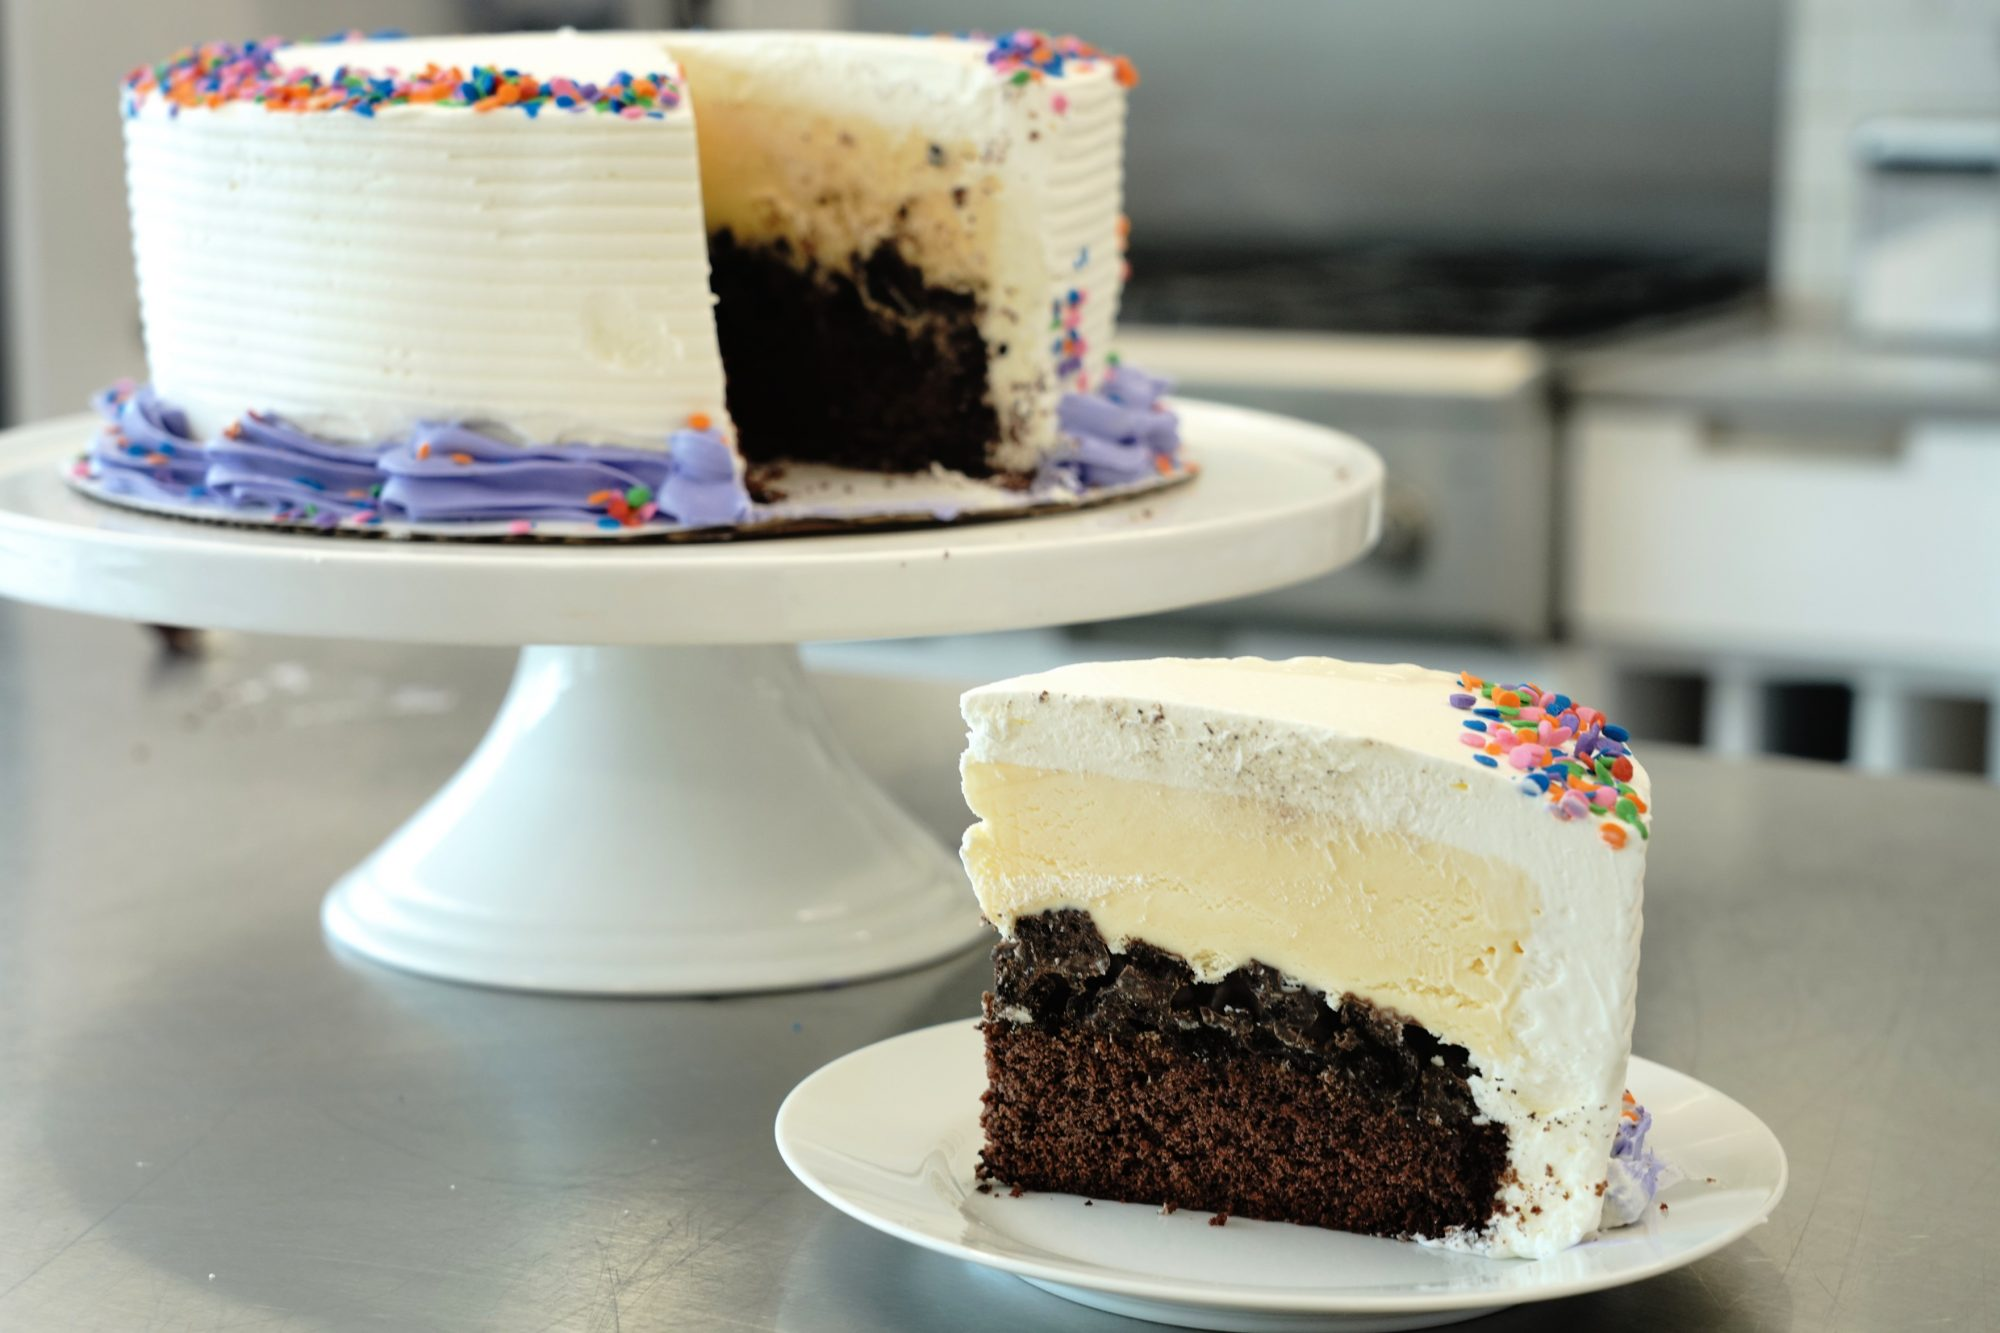 side view of a slice of homemade ice cream cake with a chocolate cake base, crunchy cookie filling, vanilla ice cream top layer, and whipped cream frosting with candy sprinkles